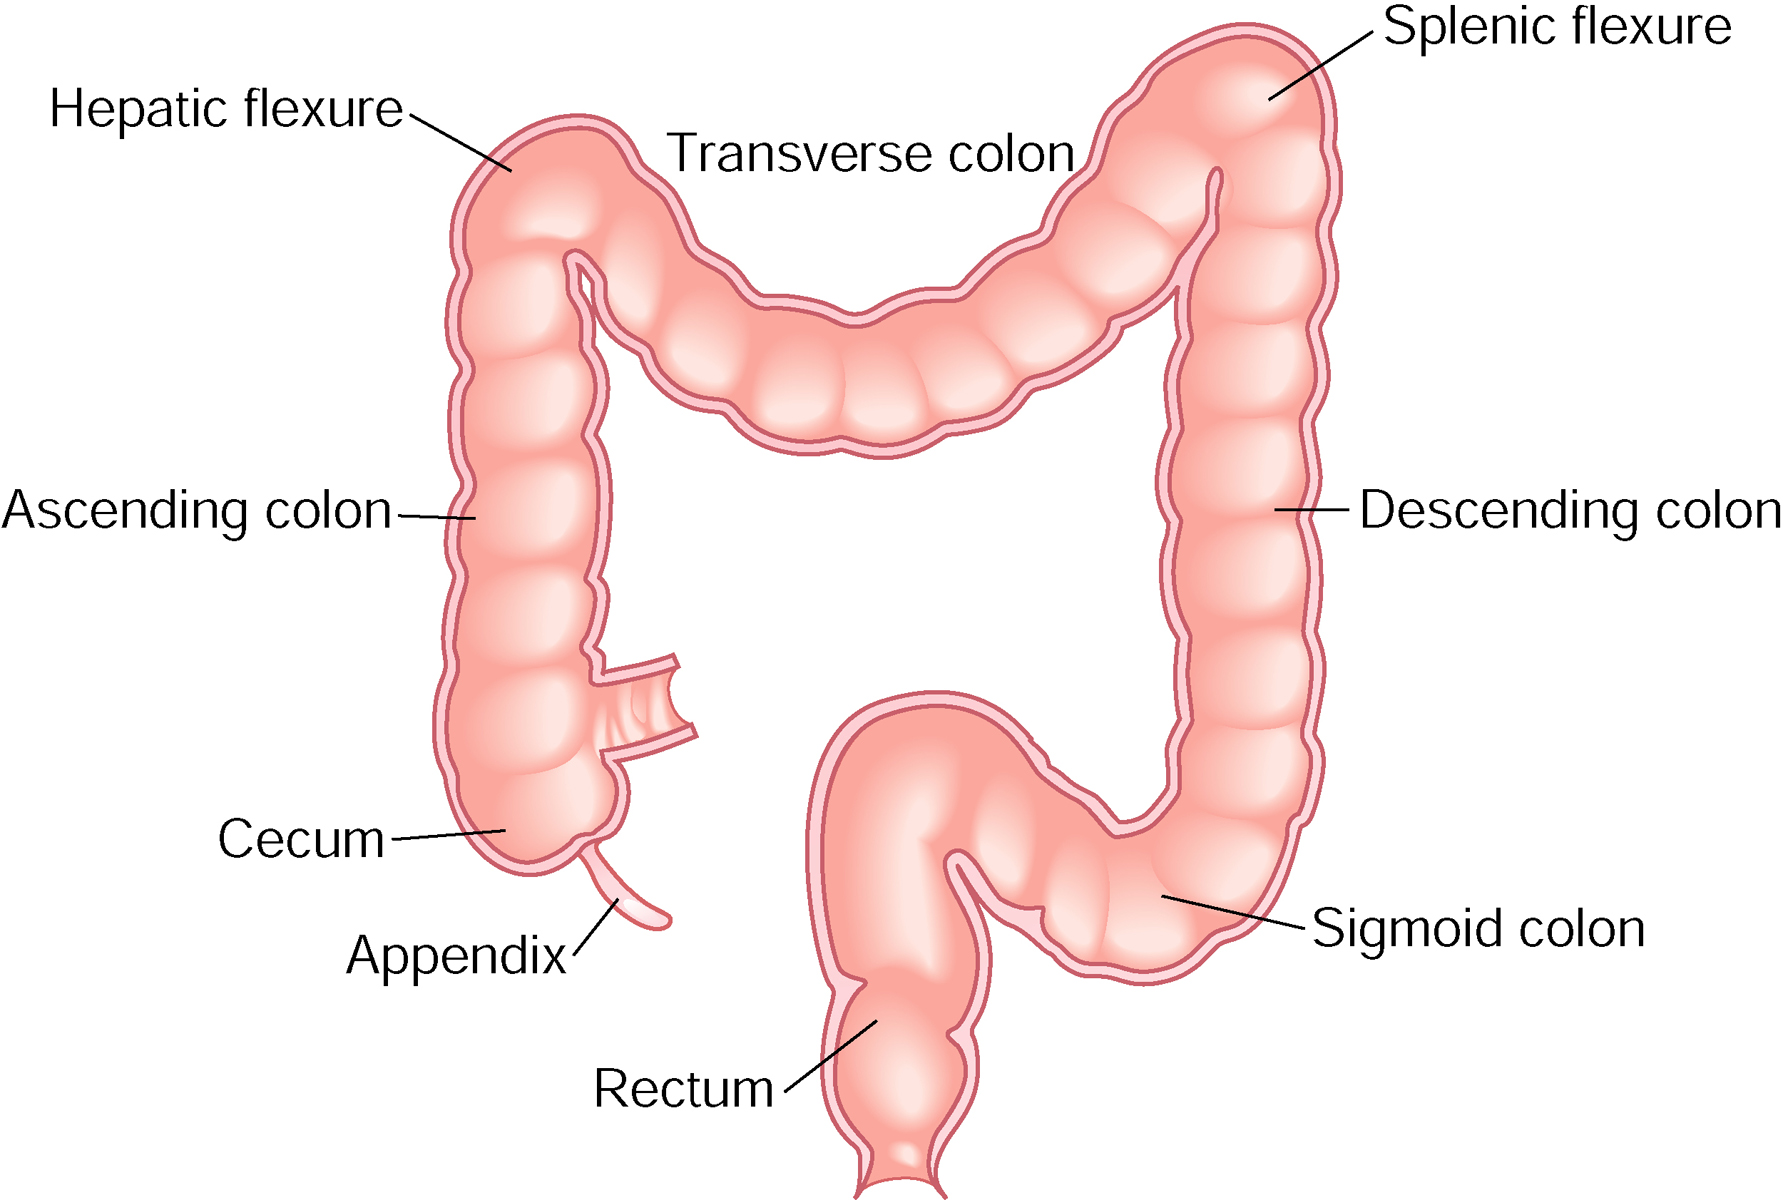 colon cancer hepatic flexure icd 10)